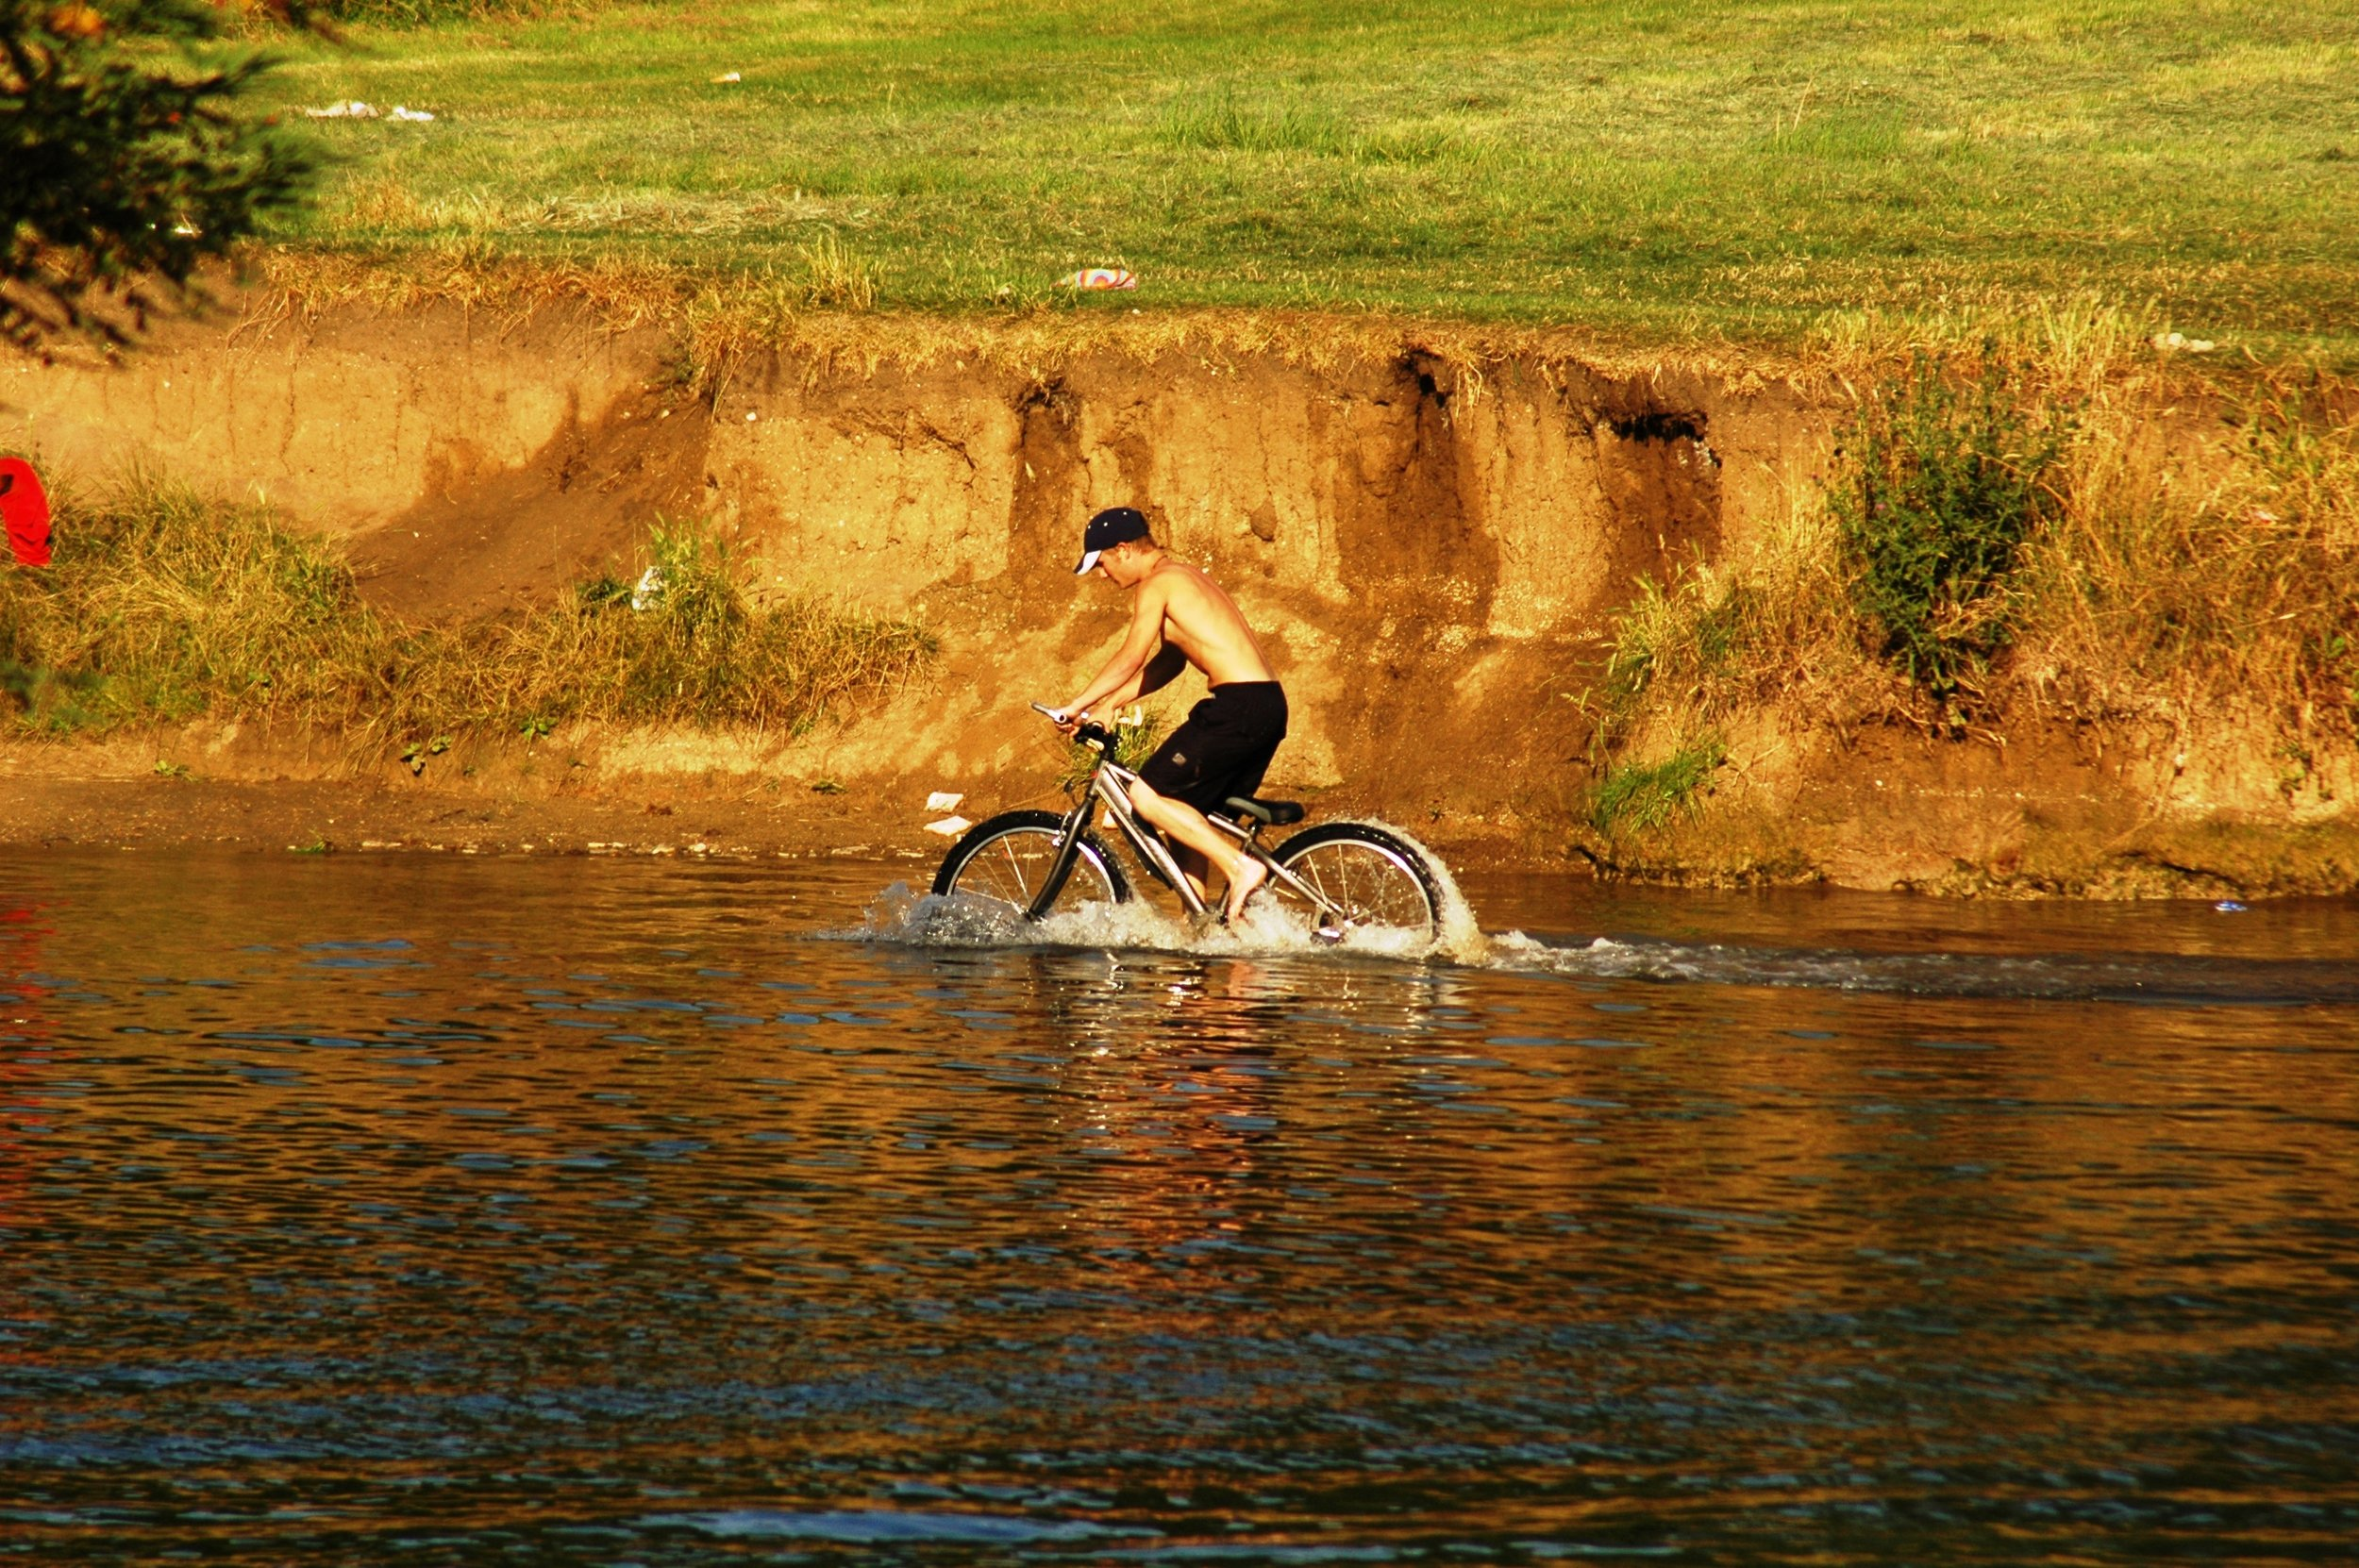 Cycling - Cycling is another way to explore the beauty of the Brecon Beacons and the surrounding area.There are many designated cycle routes, including the Taff Trail.Cycle hire and organised tours are available.